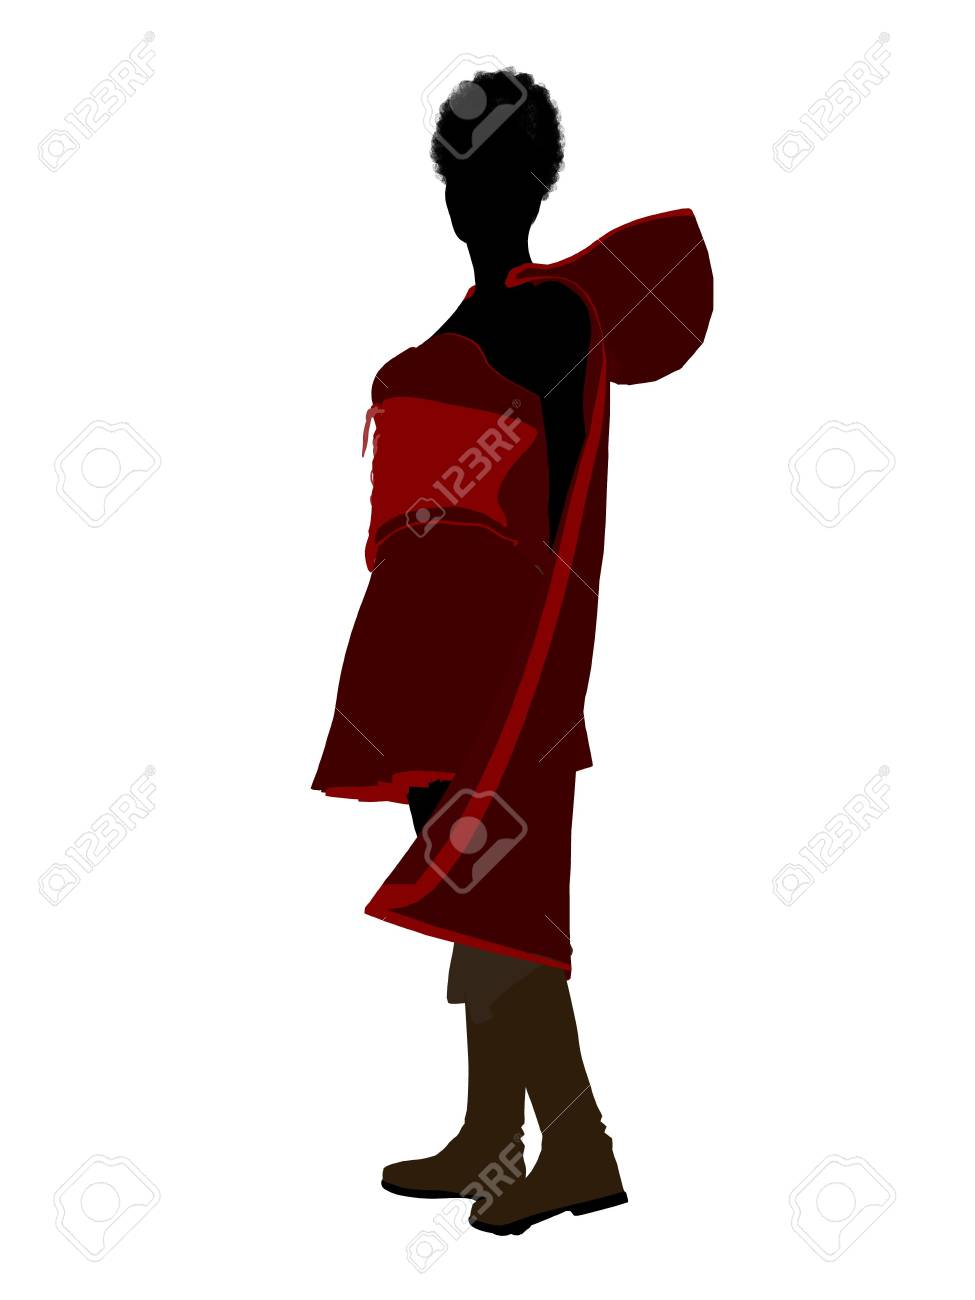 Little Red Riding Hood illustration silhouette on a white background Stock Illustration - 6587051